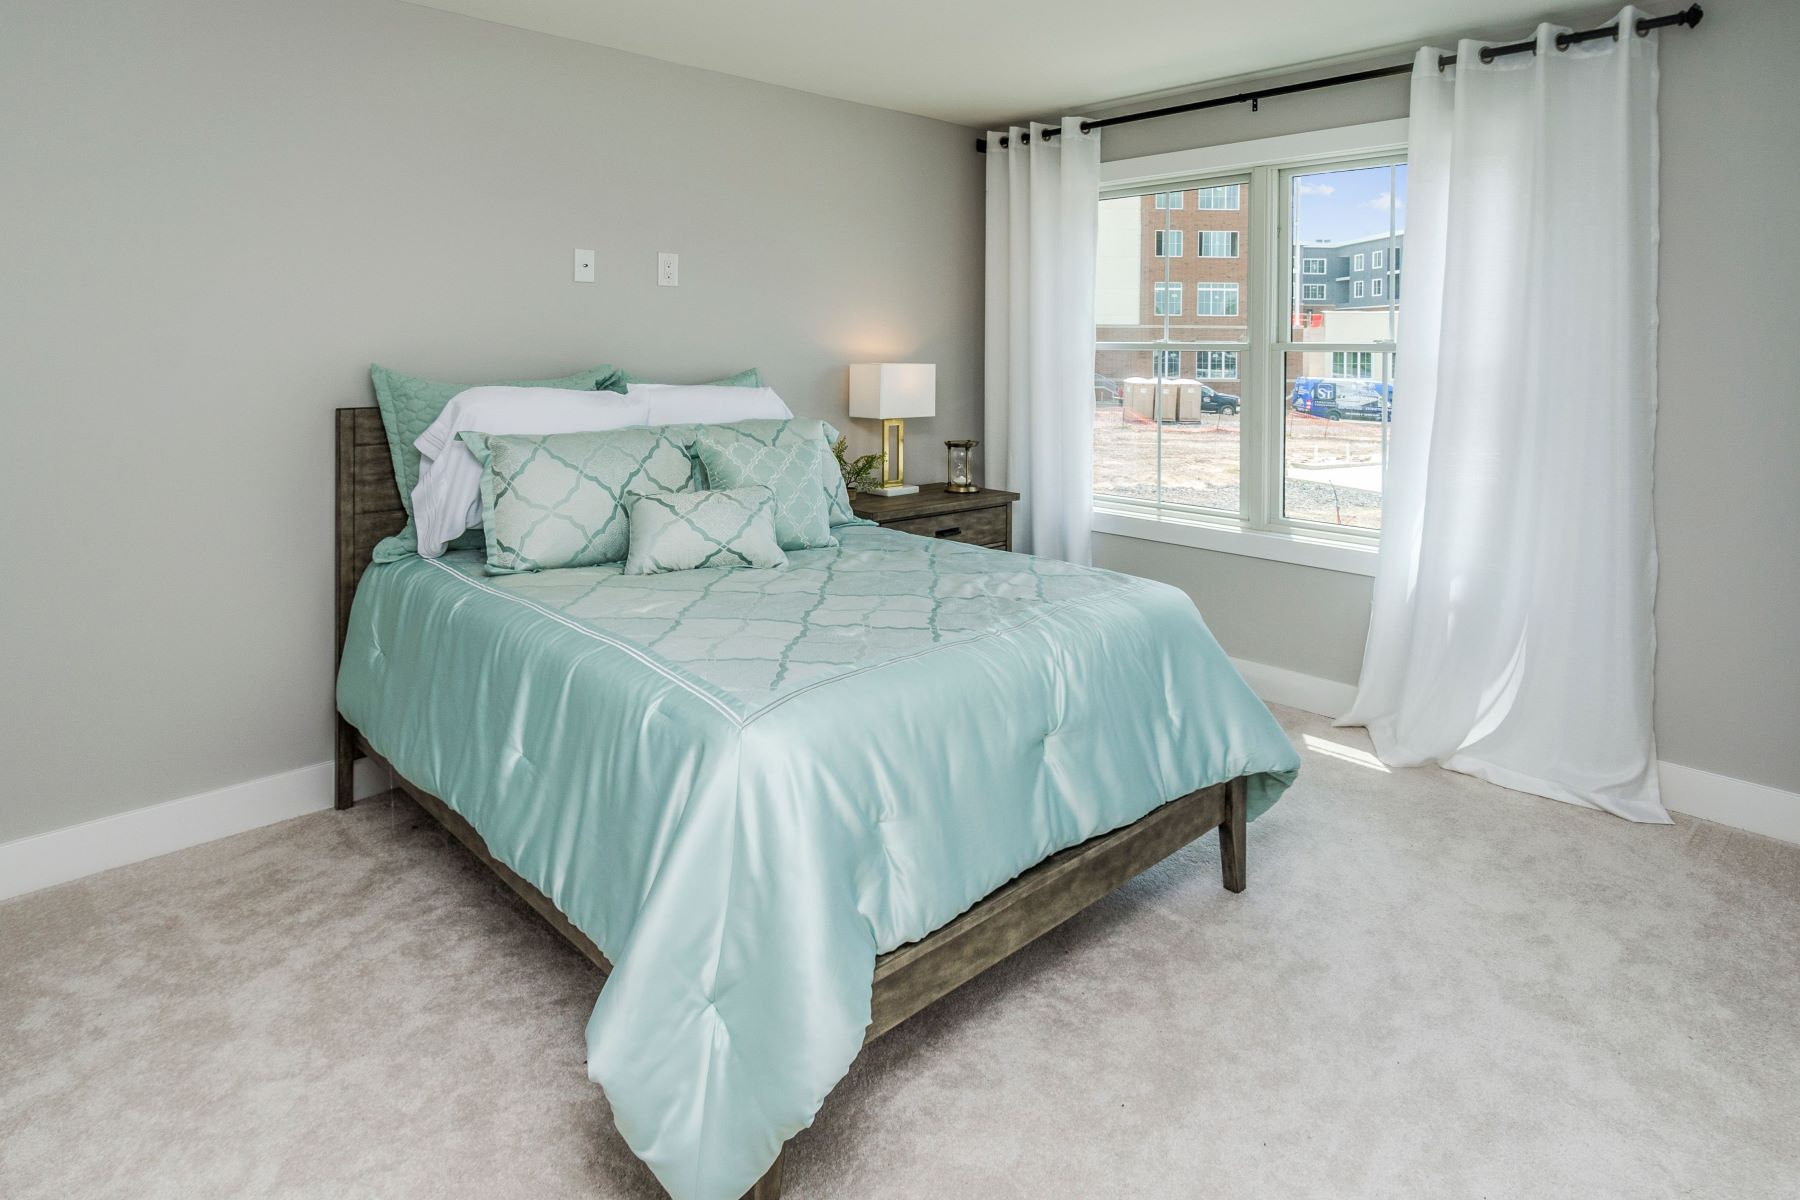 Additional photo for property listing at The Townhomes at Riverwalk Offer the Absolute Best 25 Riverwalk, Plainsboro, New Jersey 08536 United States